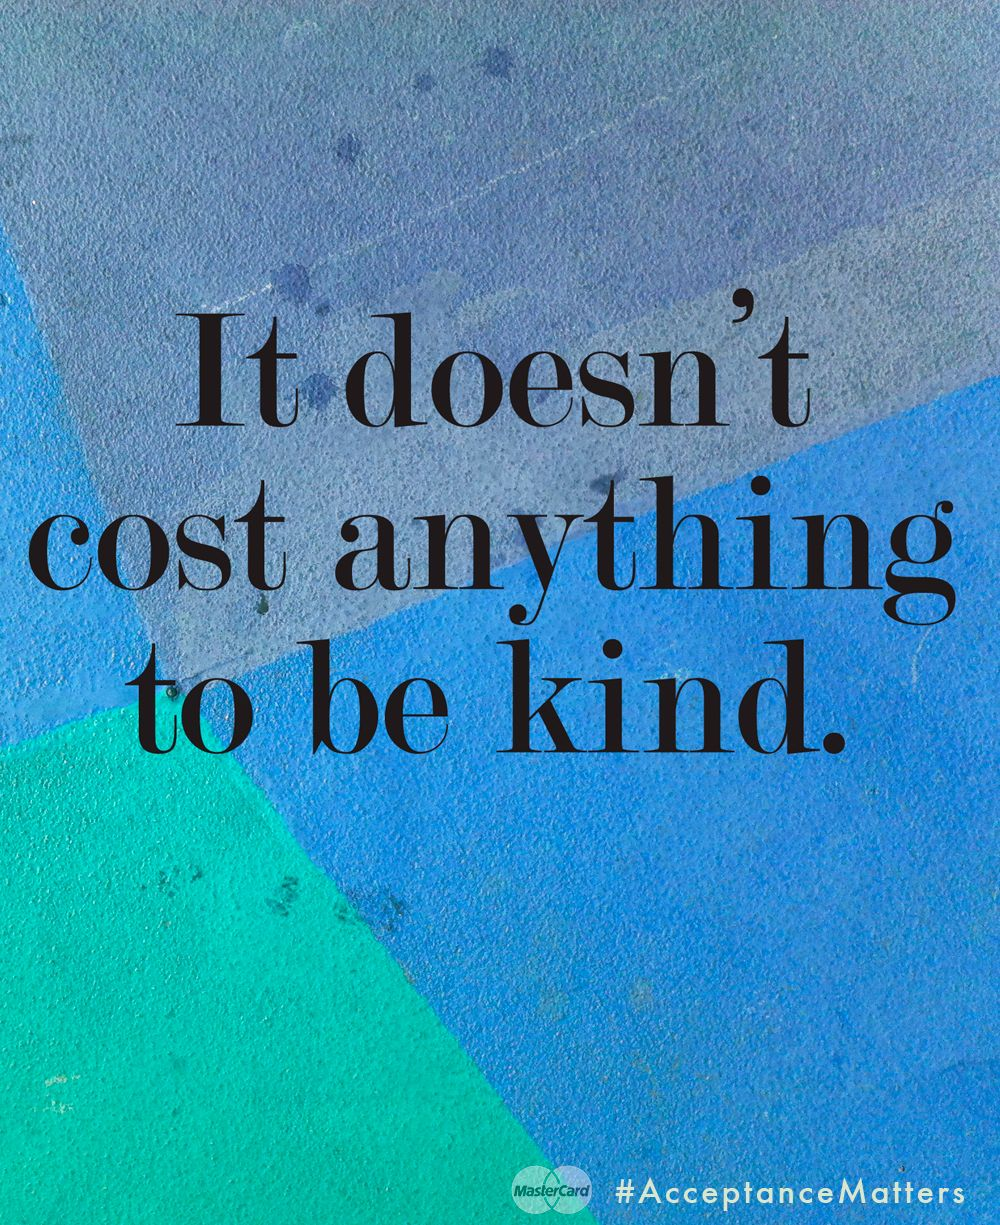 It doesn't cost anything to be kind.